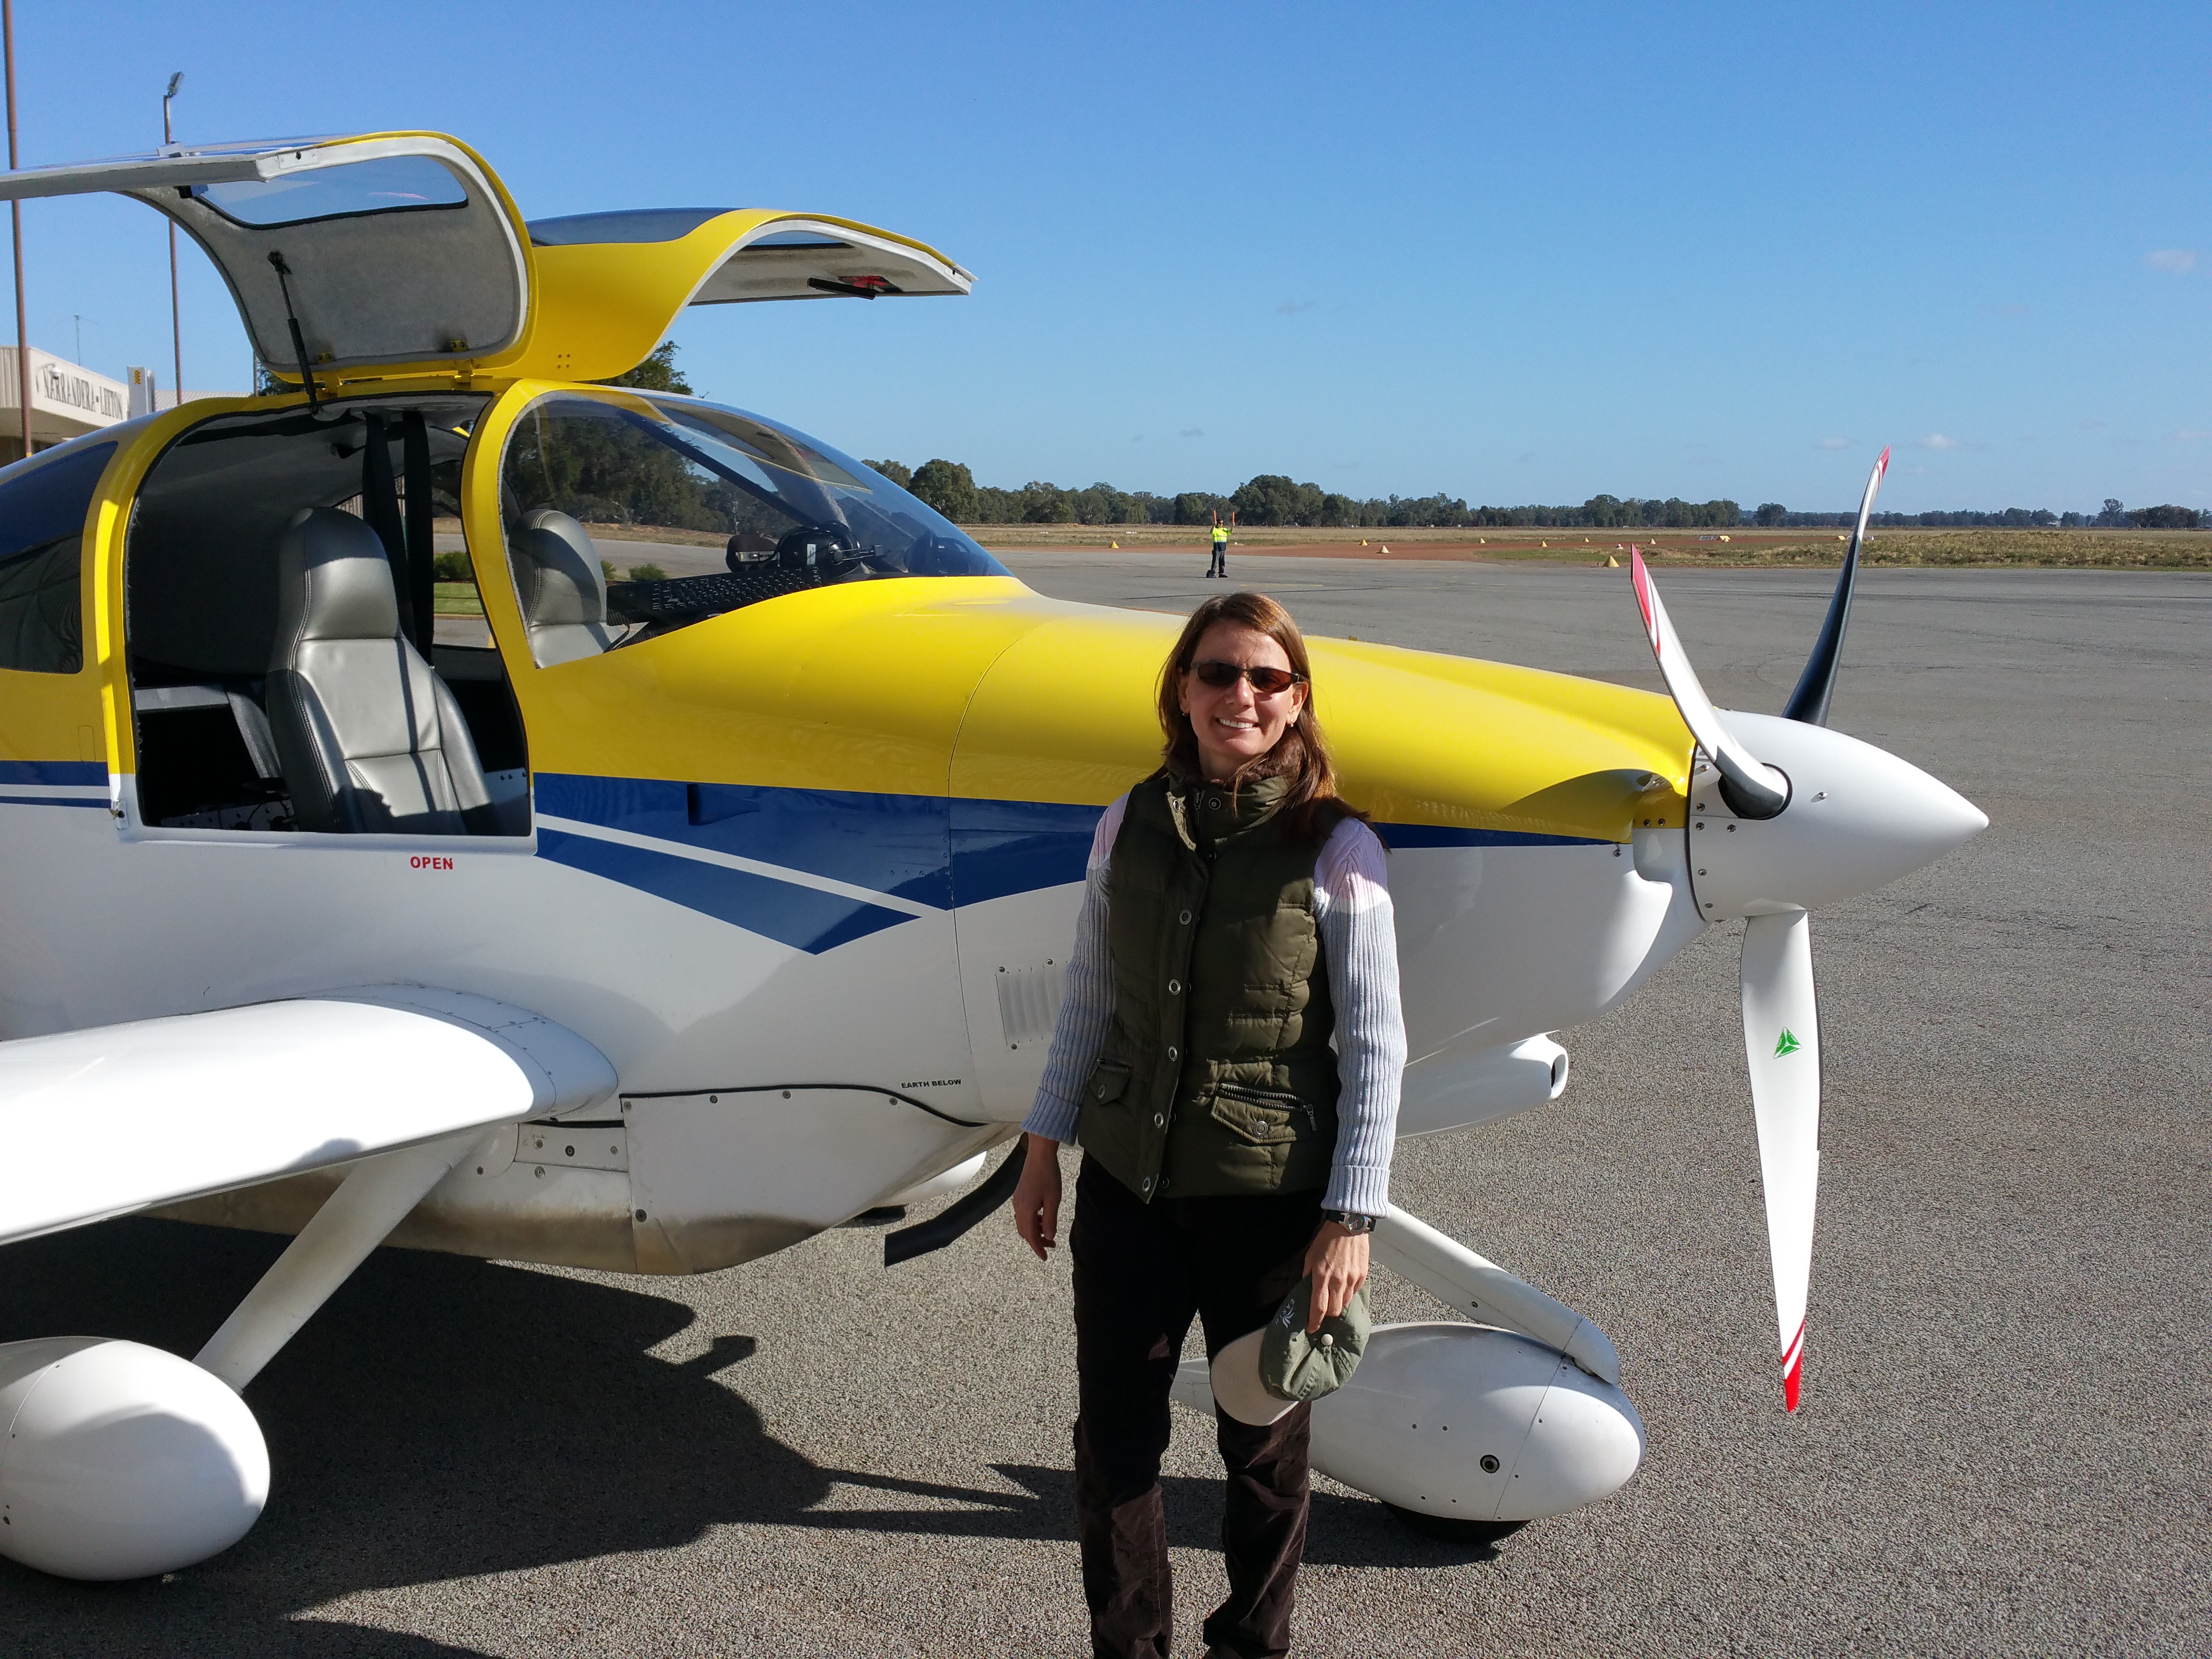 At a Soil Moisture Active Passive (SMAP) campaign in Australia, posing in front of an aircraft that collected measurements in support of the calibration/validation activities. Credit: Erika Podest